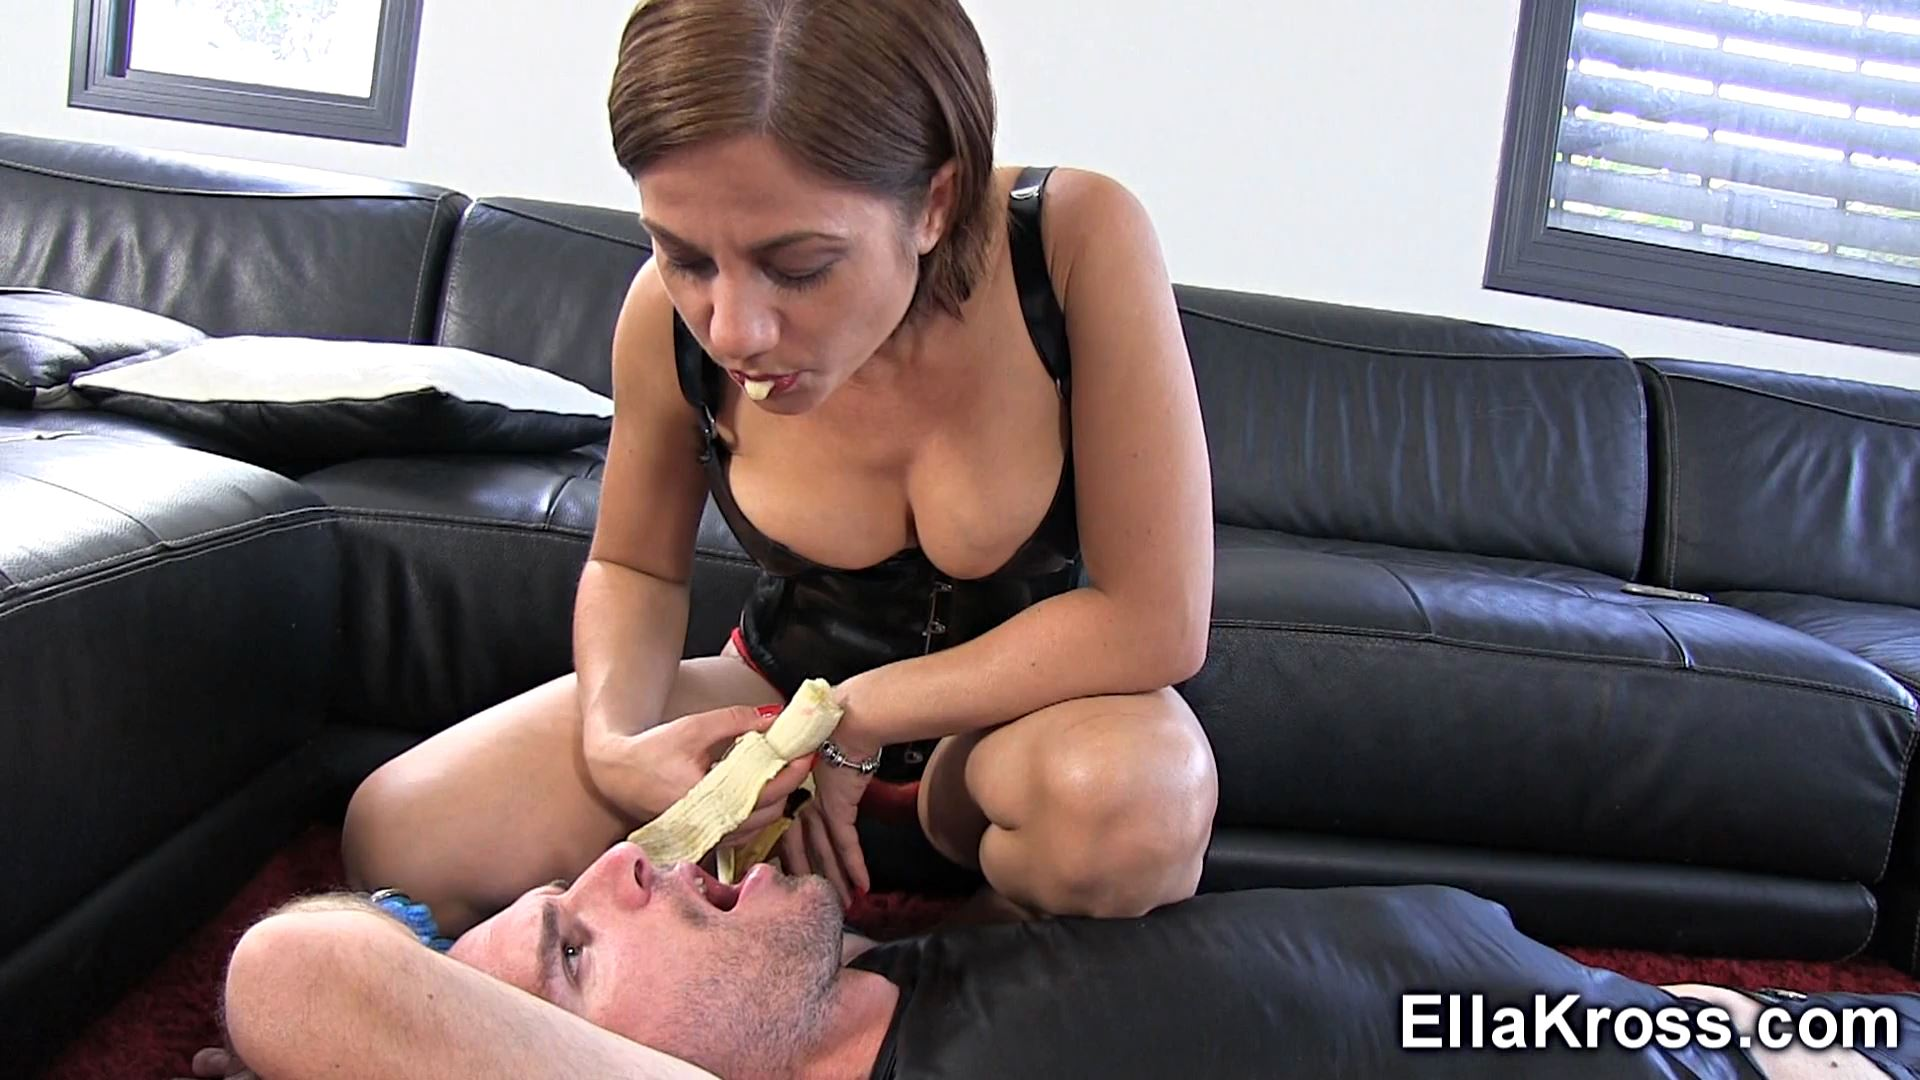 Ella Kross In Scene: Foot Worship and Spitting Food in Your Mouth - ELLAKROSS - FULL HD/1080p/MP4